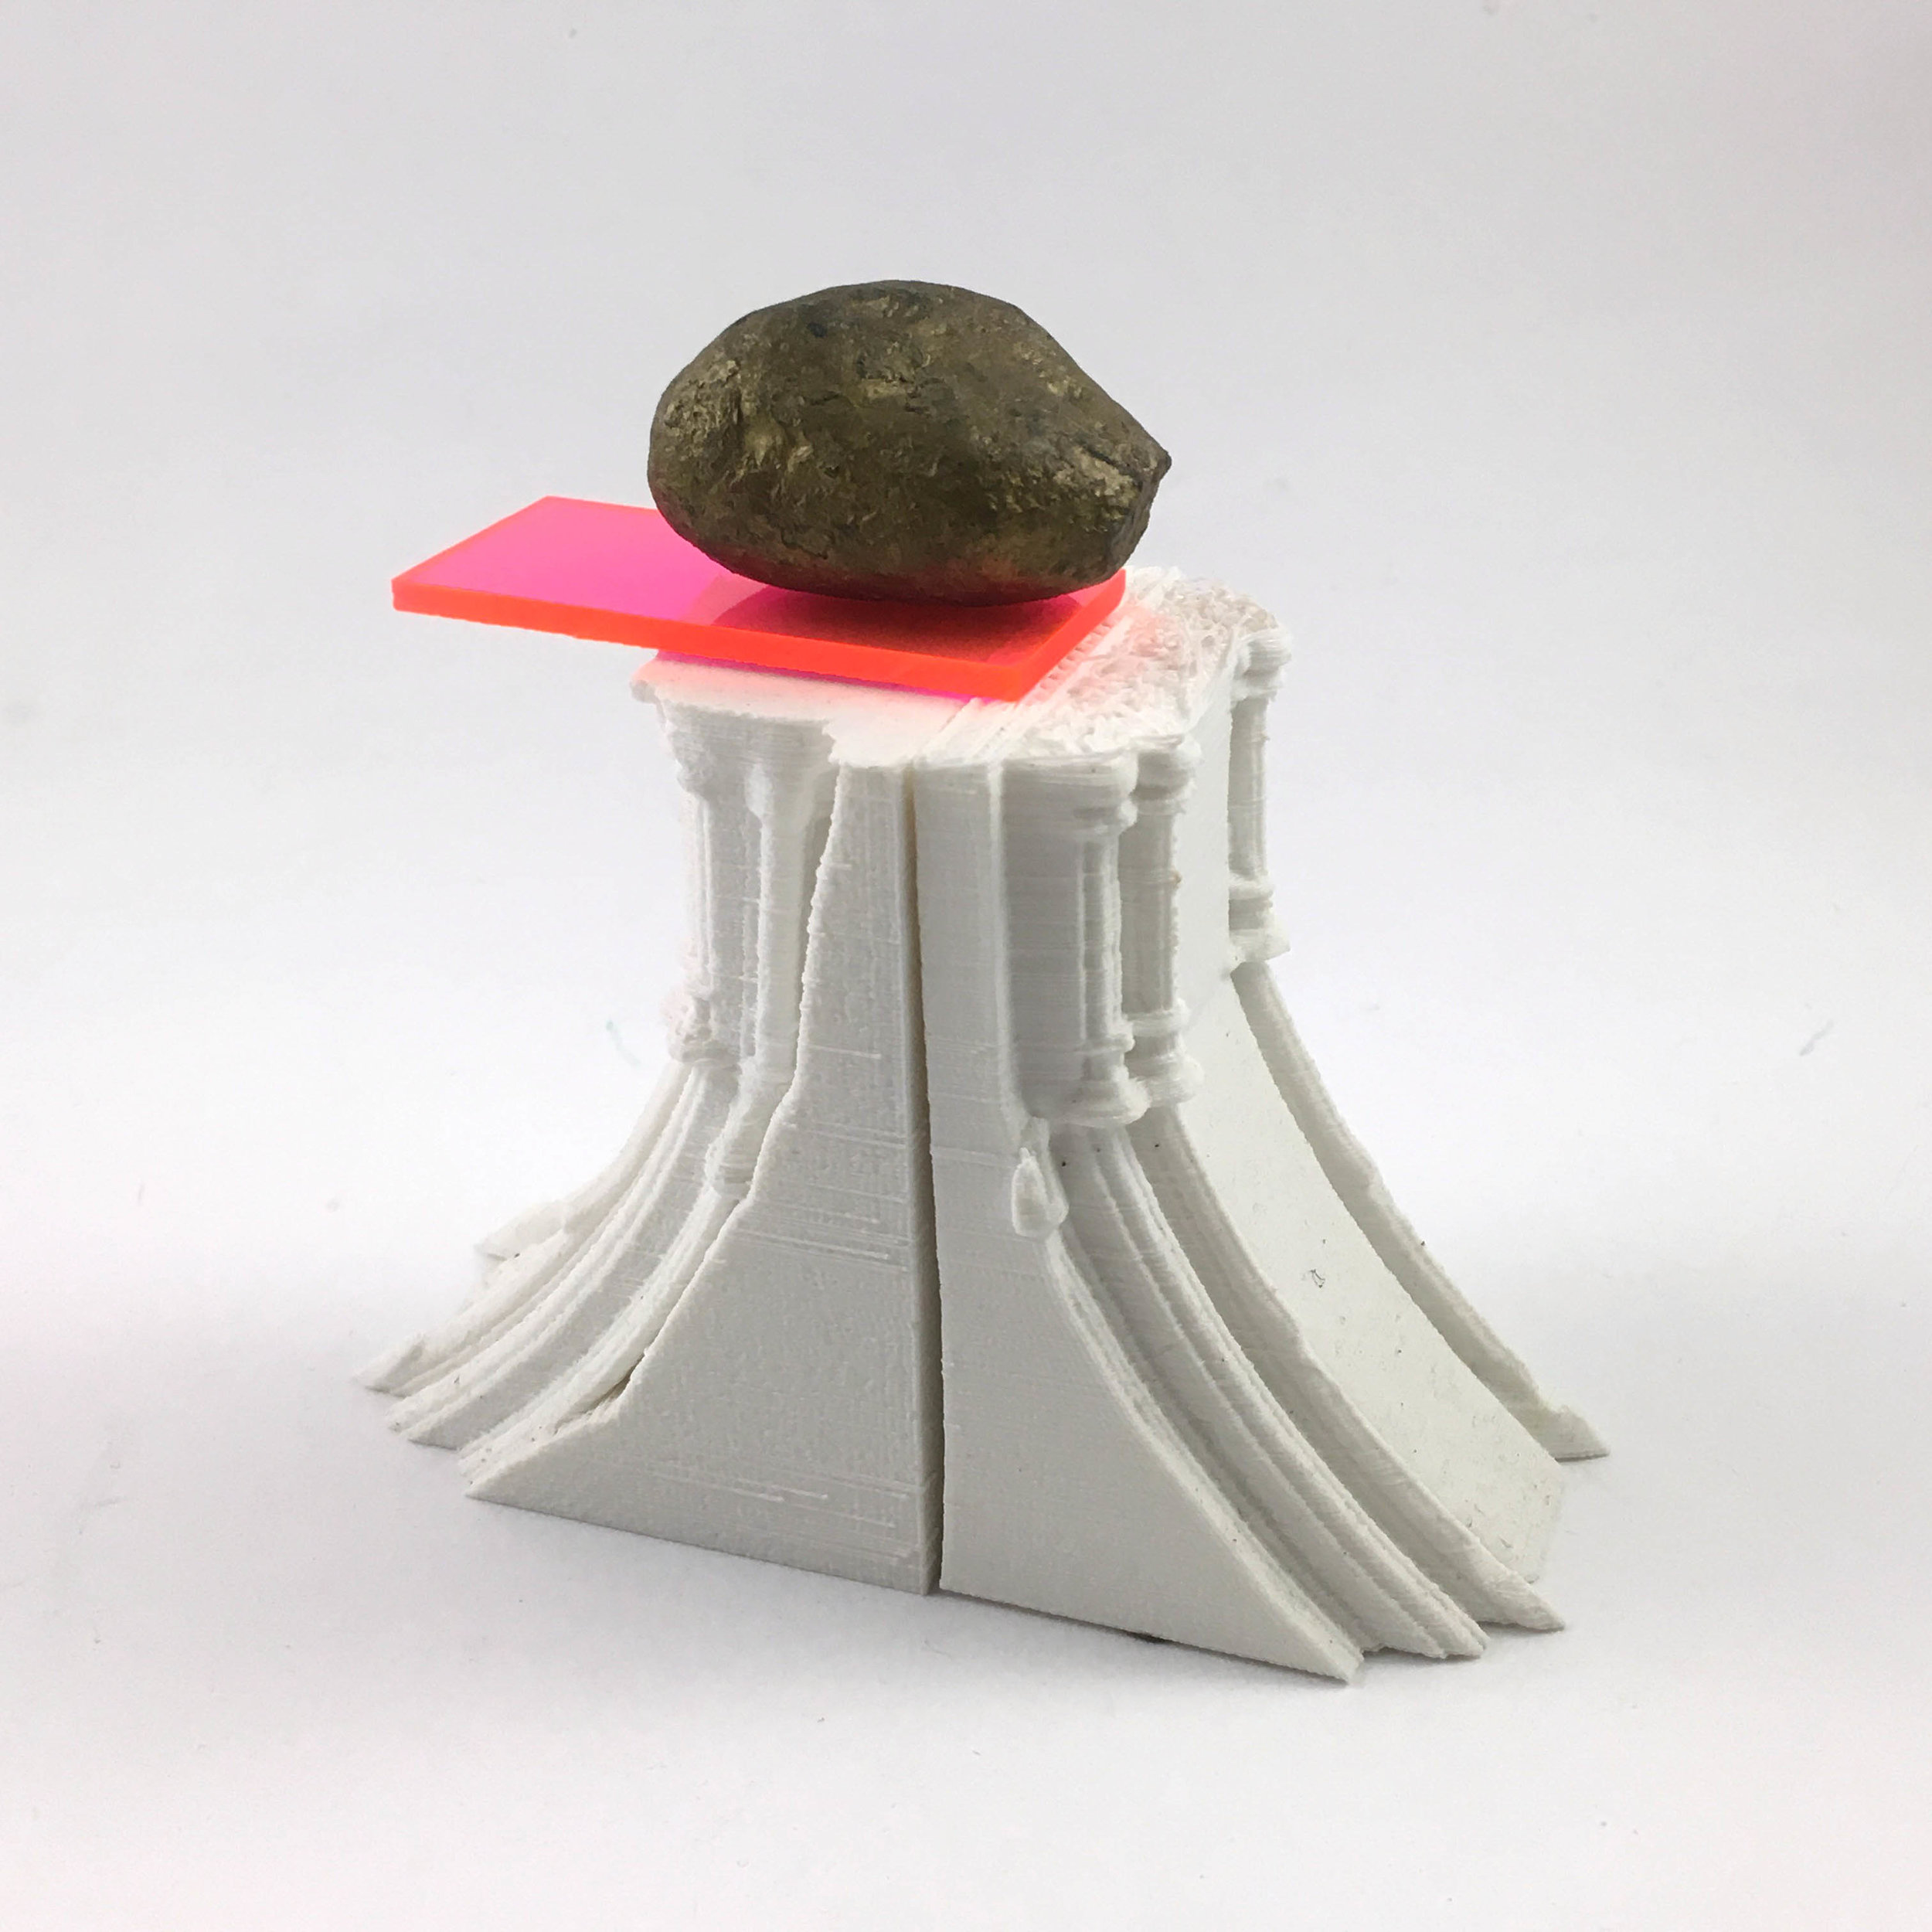 Monument Remodeled   3D-printed plastic, acrylic, gold-painted rock  2018